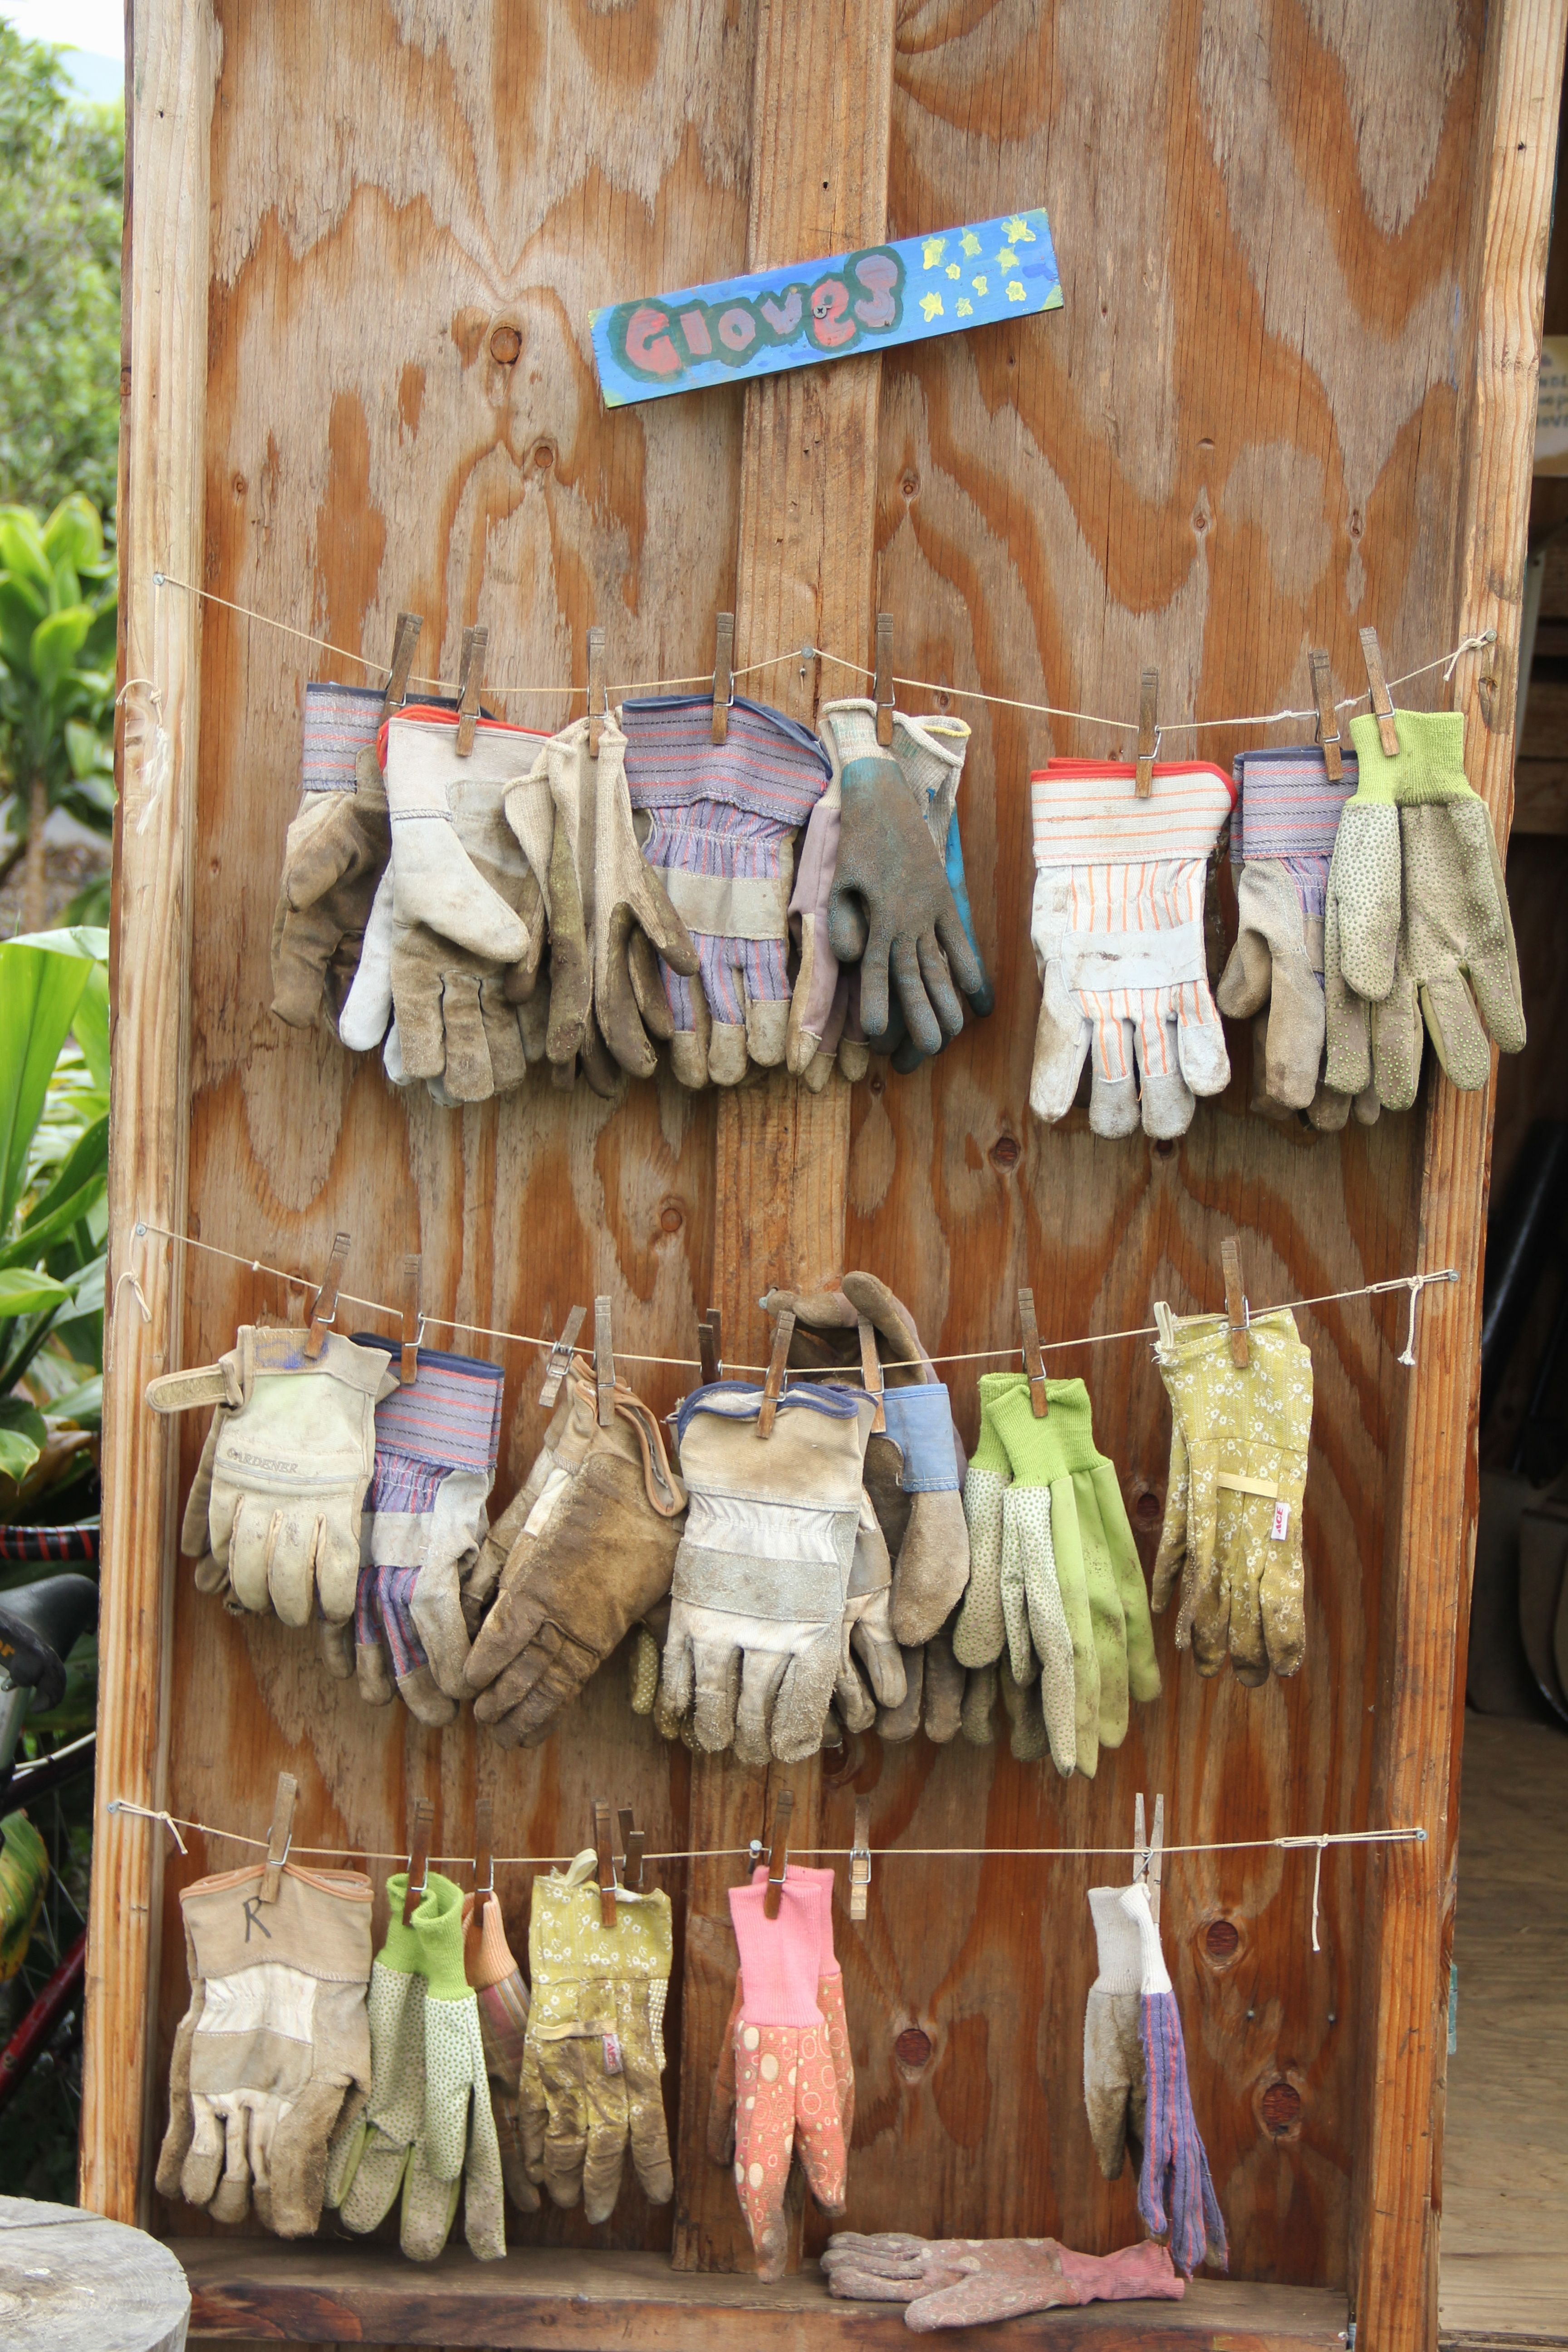 Great idea for drying/organizing gloves for a school garden ...